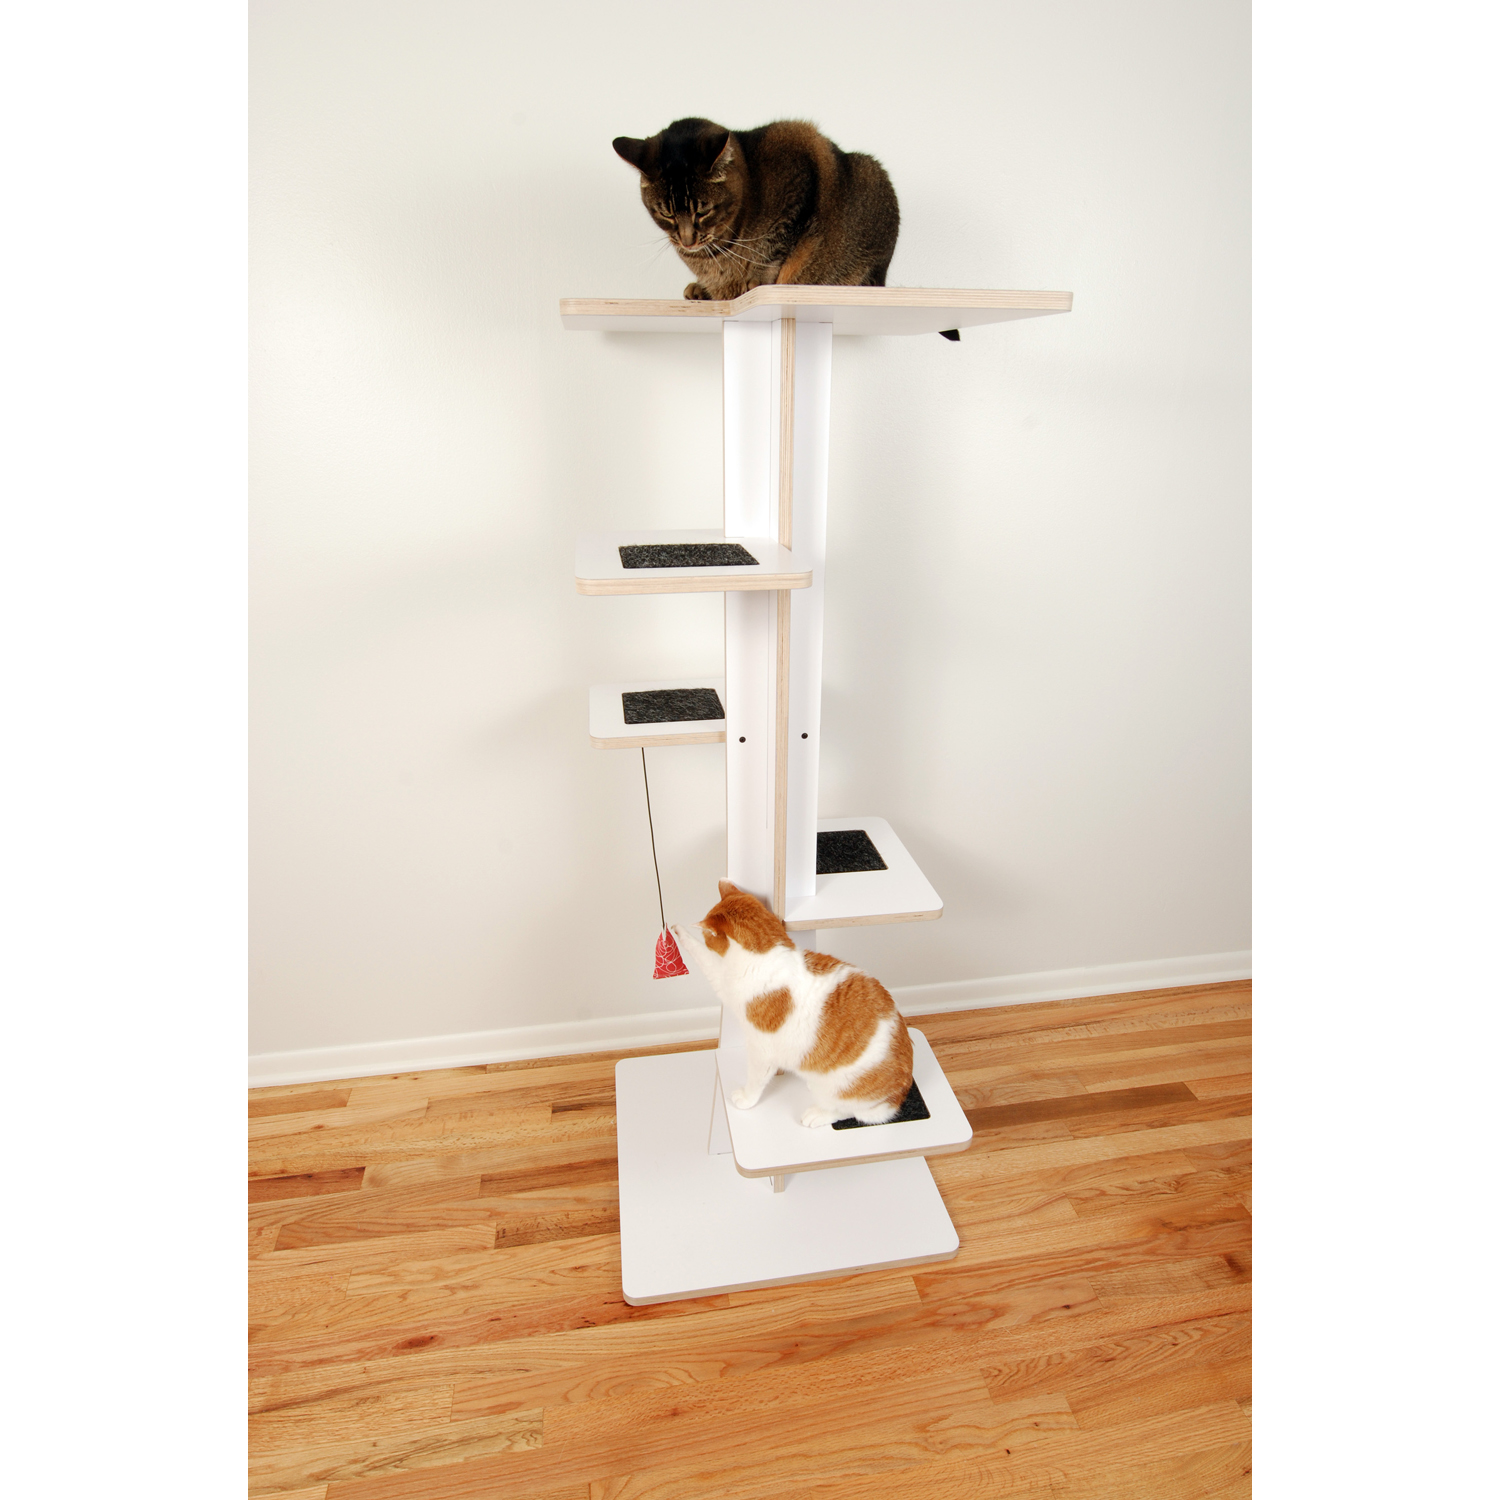 contemporary ideas best litter stylish designer tree creative on modern cat box pet buy house furniture design